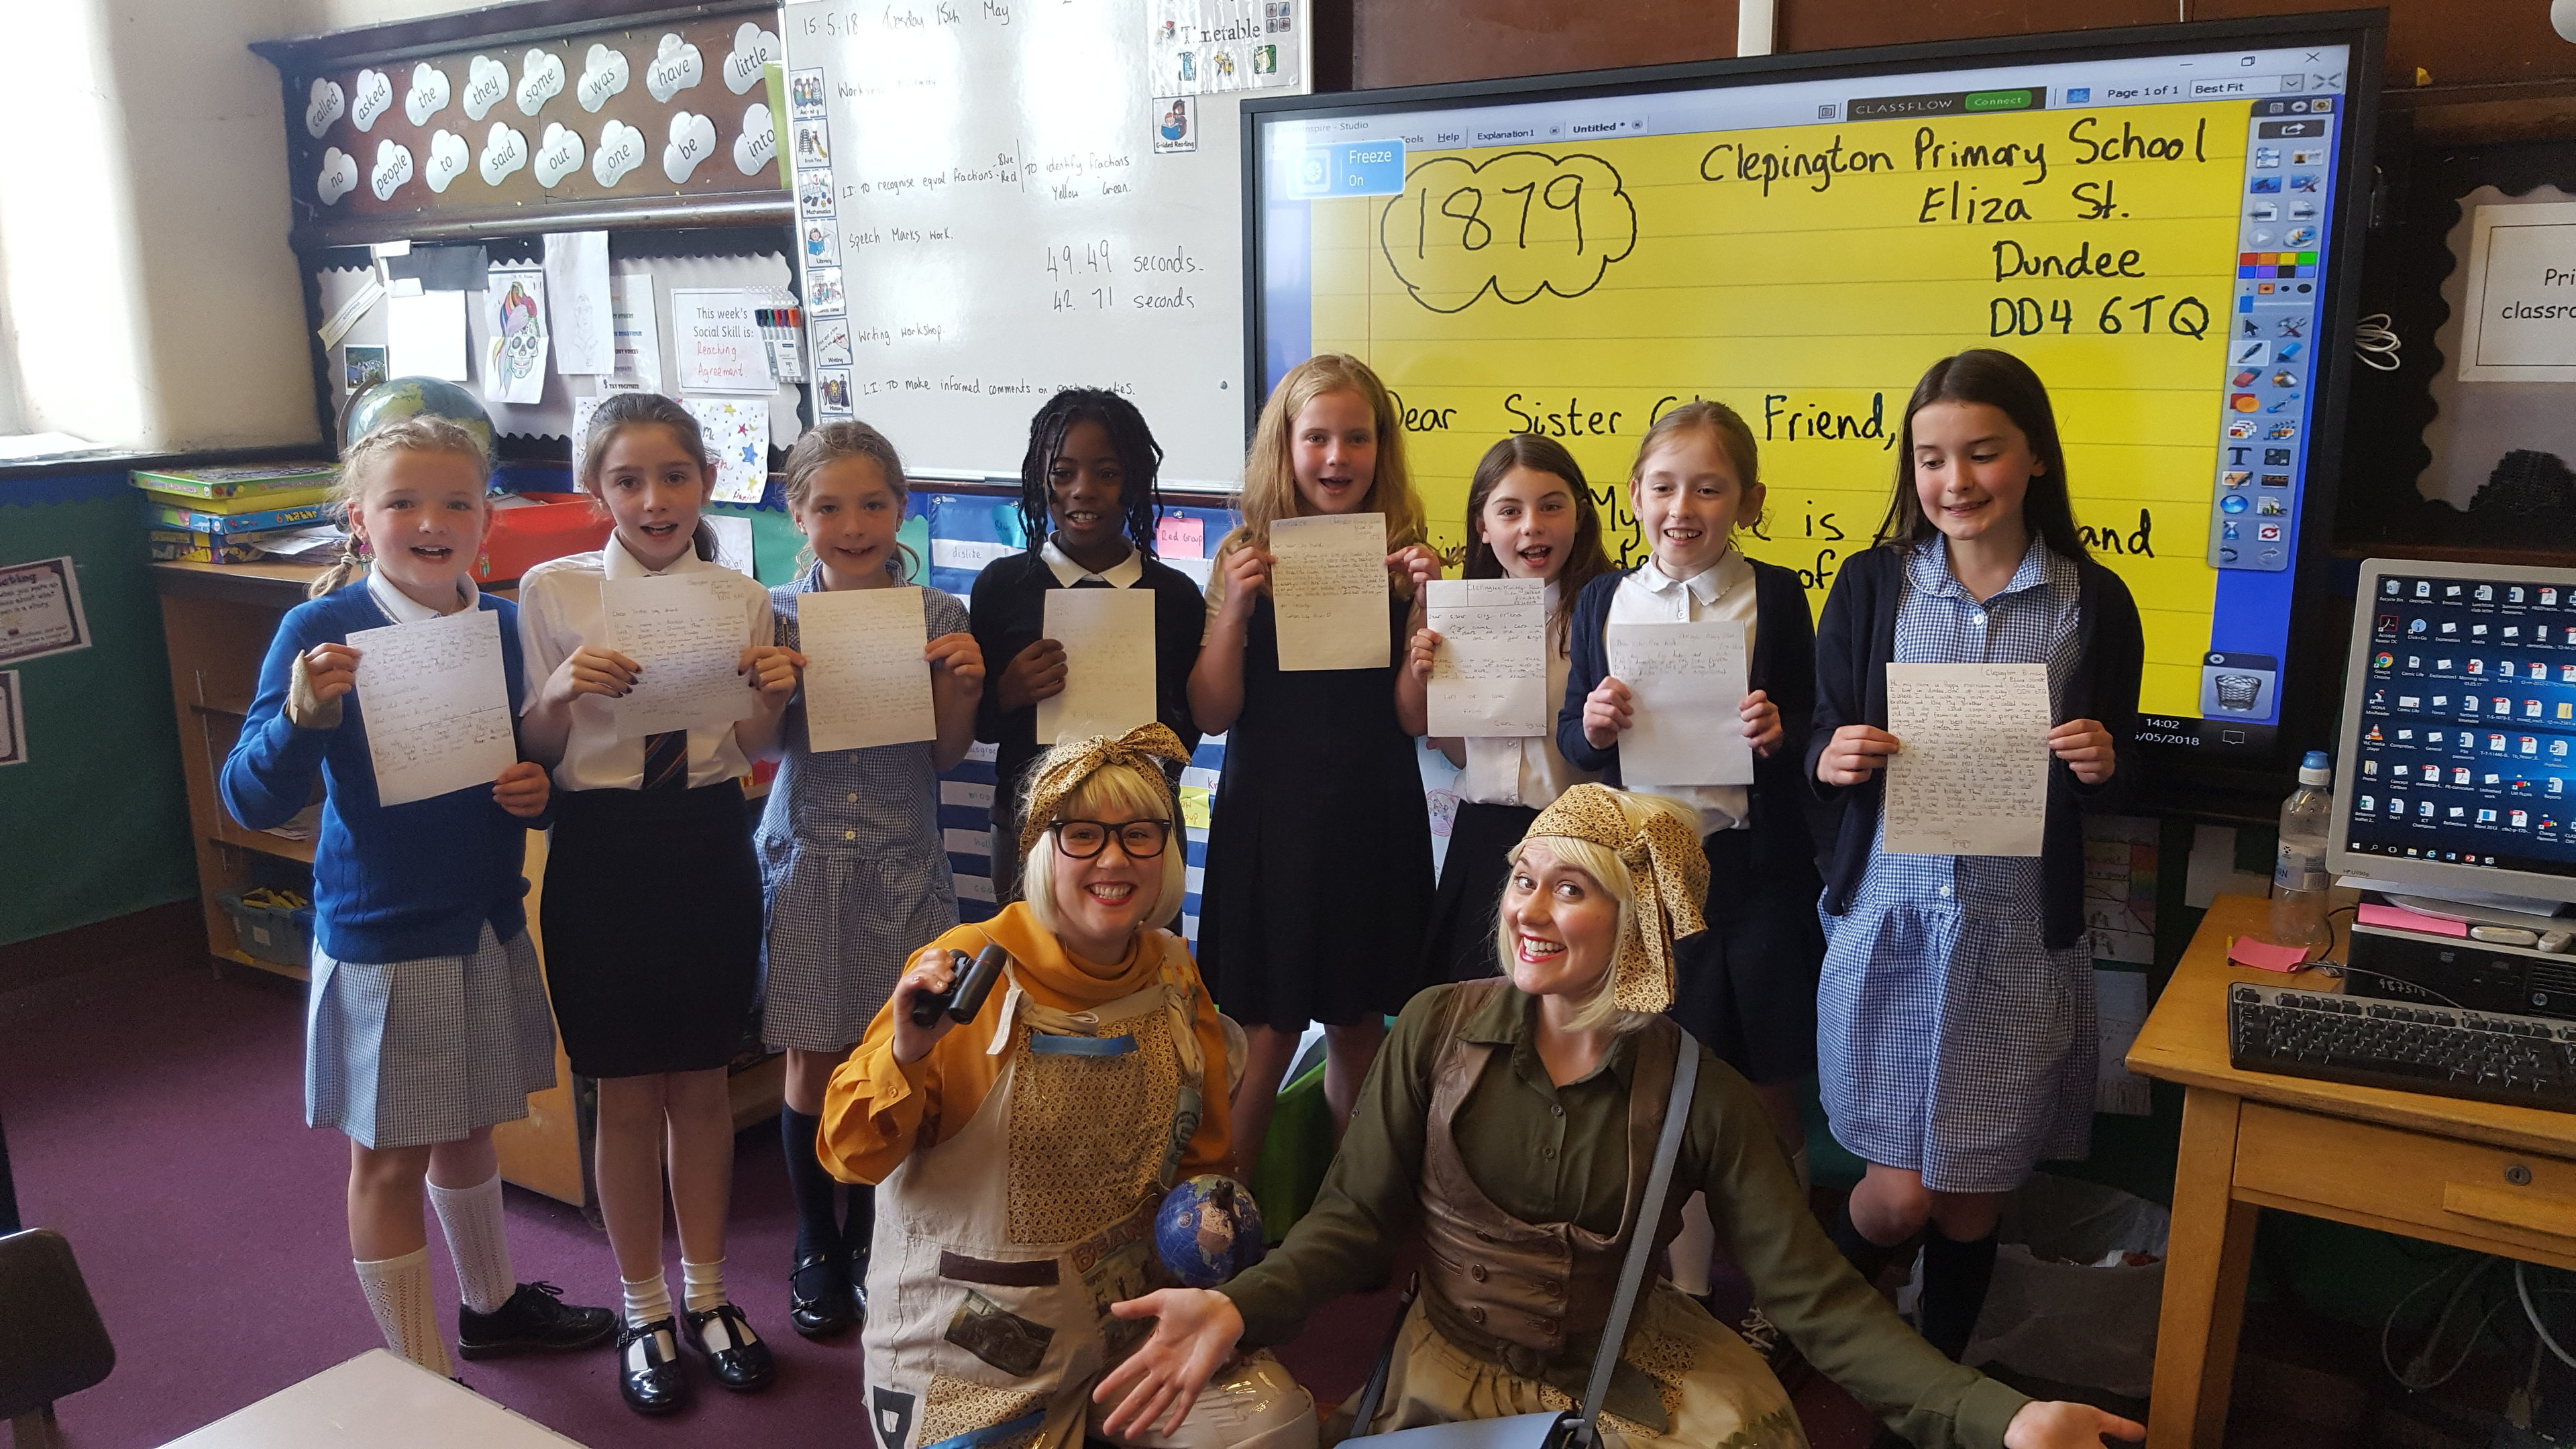 Dundee pupils with their pen pal letters.